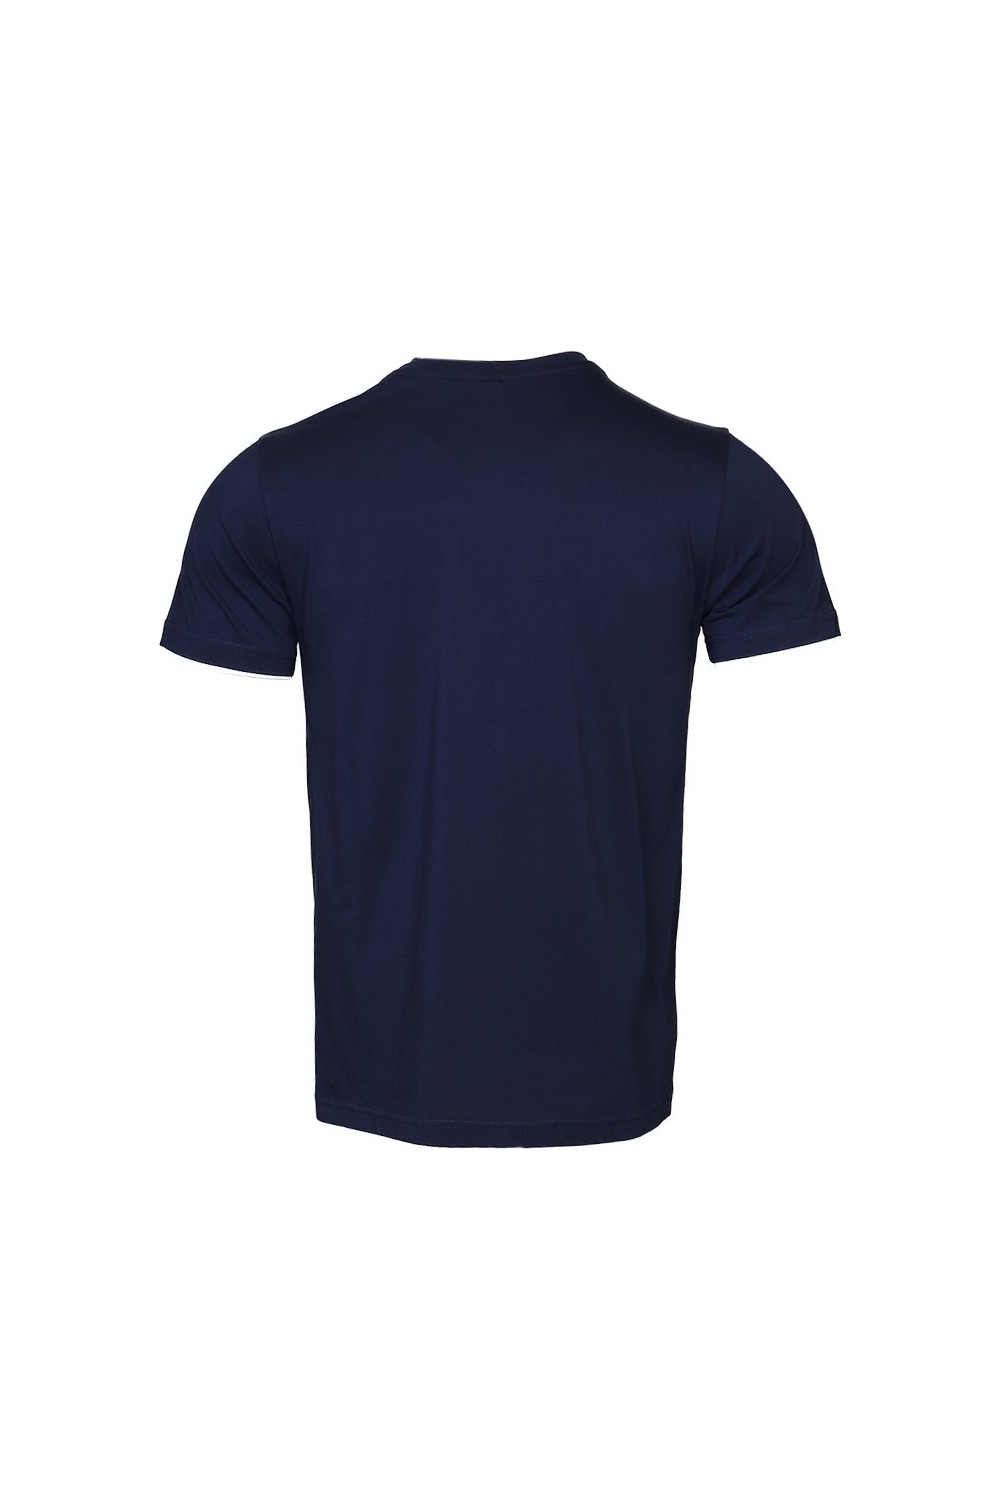 Hummel Men's T-Shirt with Printed Details  910392-7480